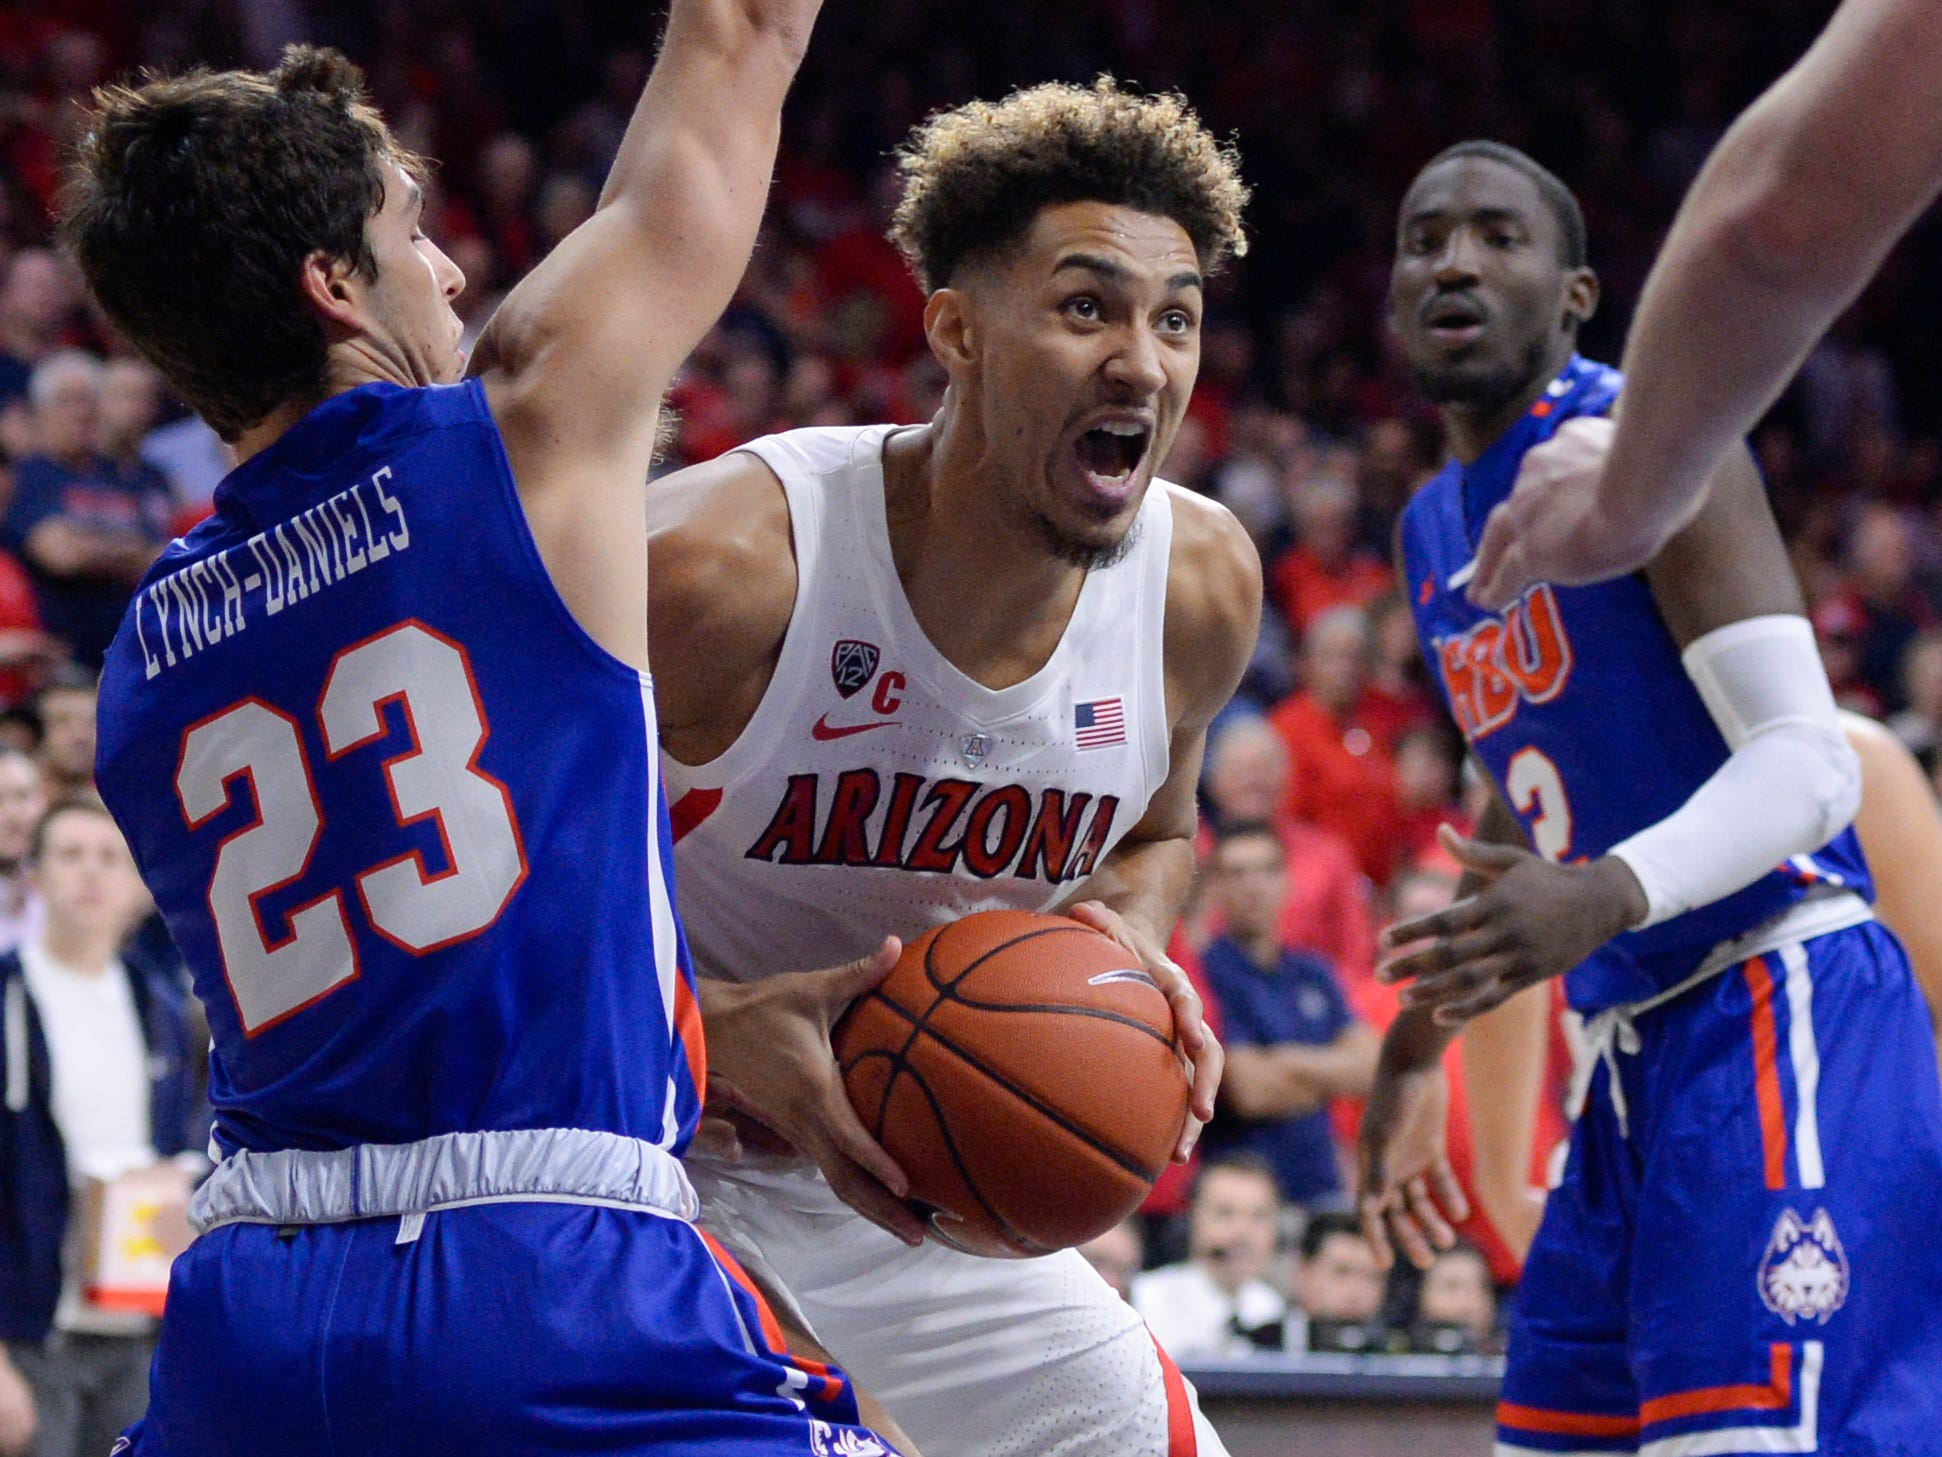 Nov 7, 2018; Tucson, AZ, USA; Arizona Wildcats center Chase Jeter (4) looks to shoot as Houston Baptist Huskies guard Oliver Lynch-Daniels (23) defends during the second half at McKale Center. Mandatory Credit: Casey Sapio-USA TODAY Sports